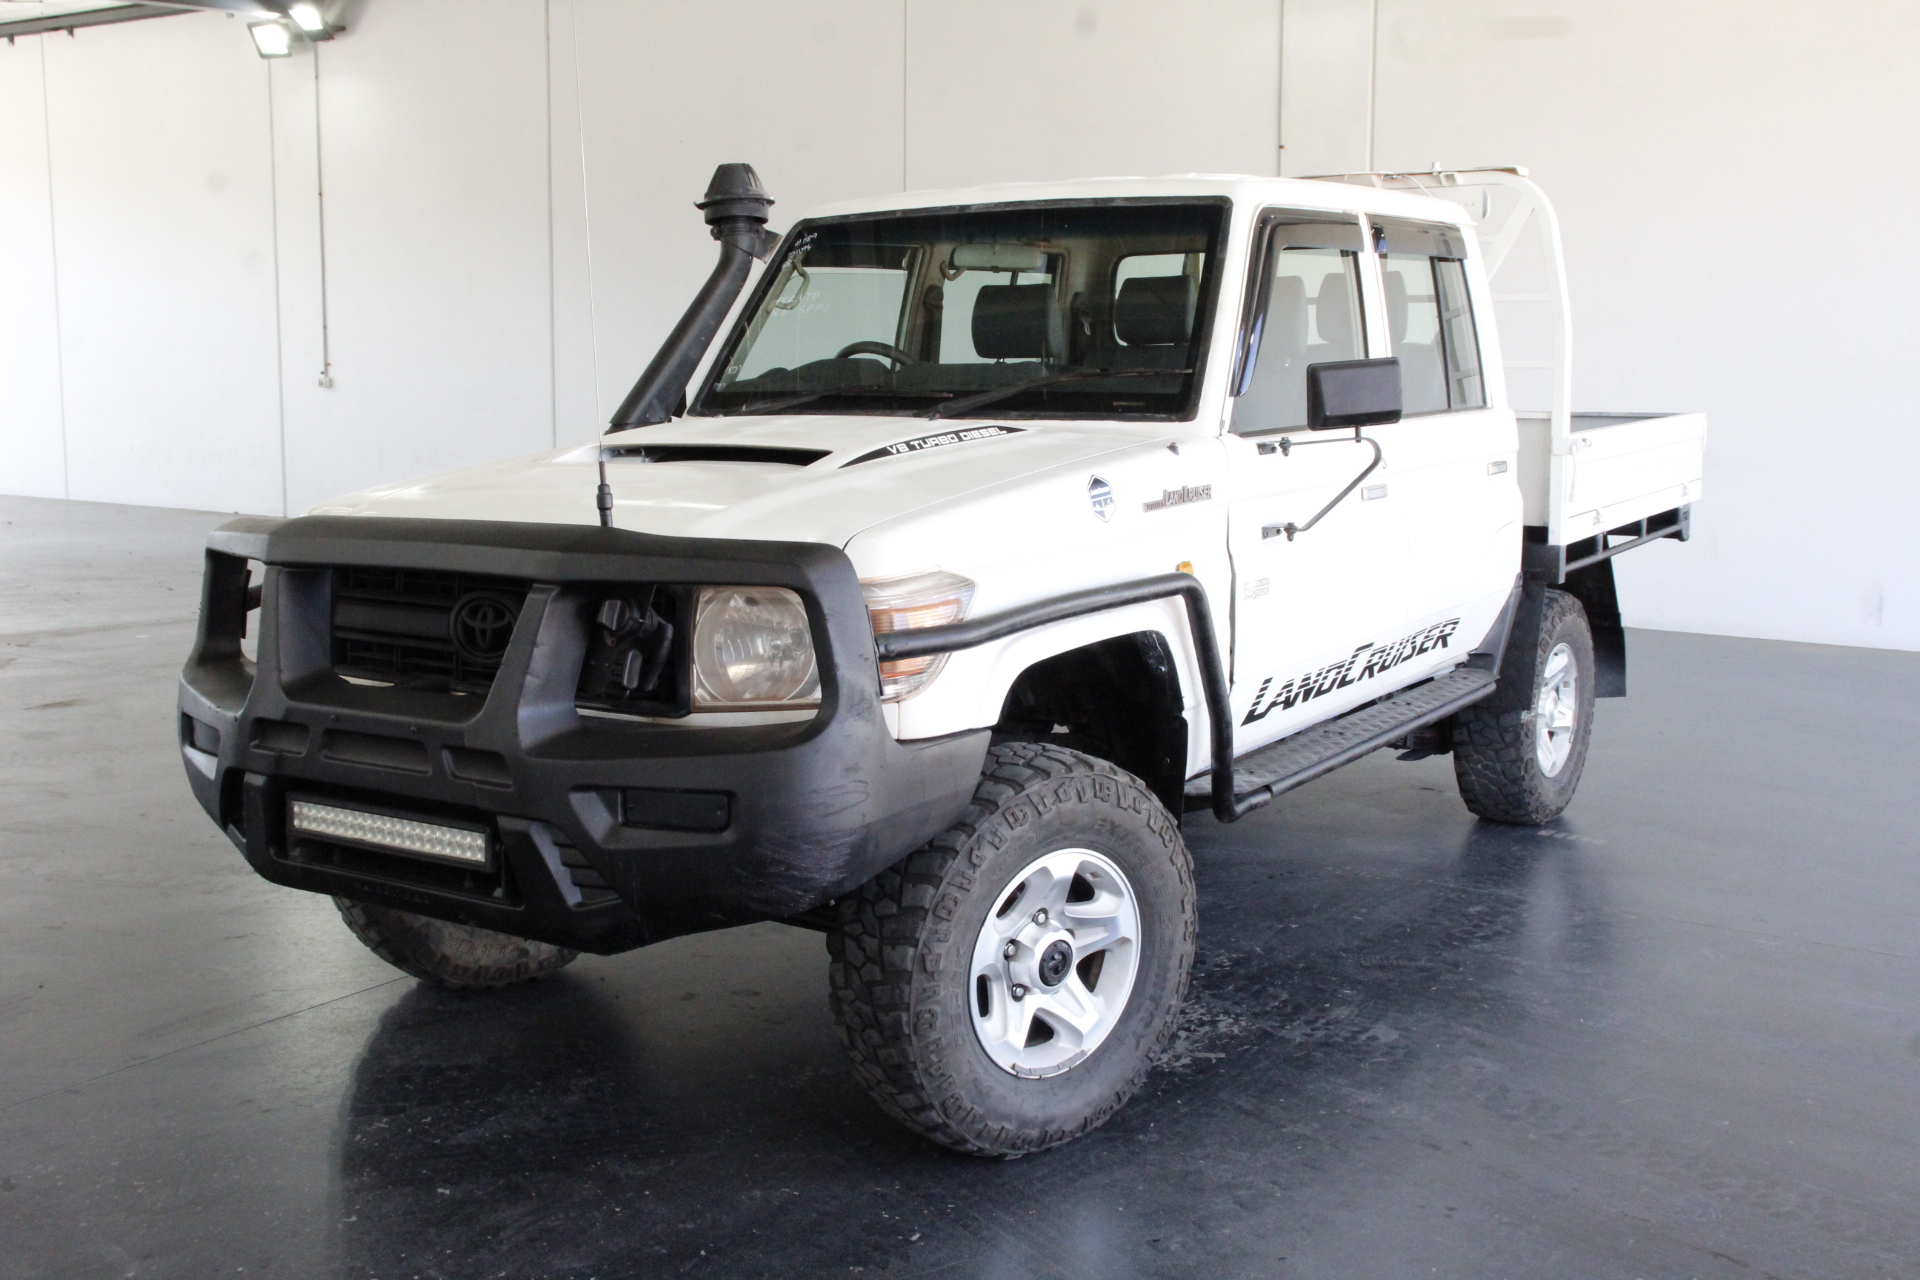 2015 Toyota Landcruiser Workmate (4x4) VDJ79R T/D Manual Crew Cab Chassis